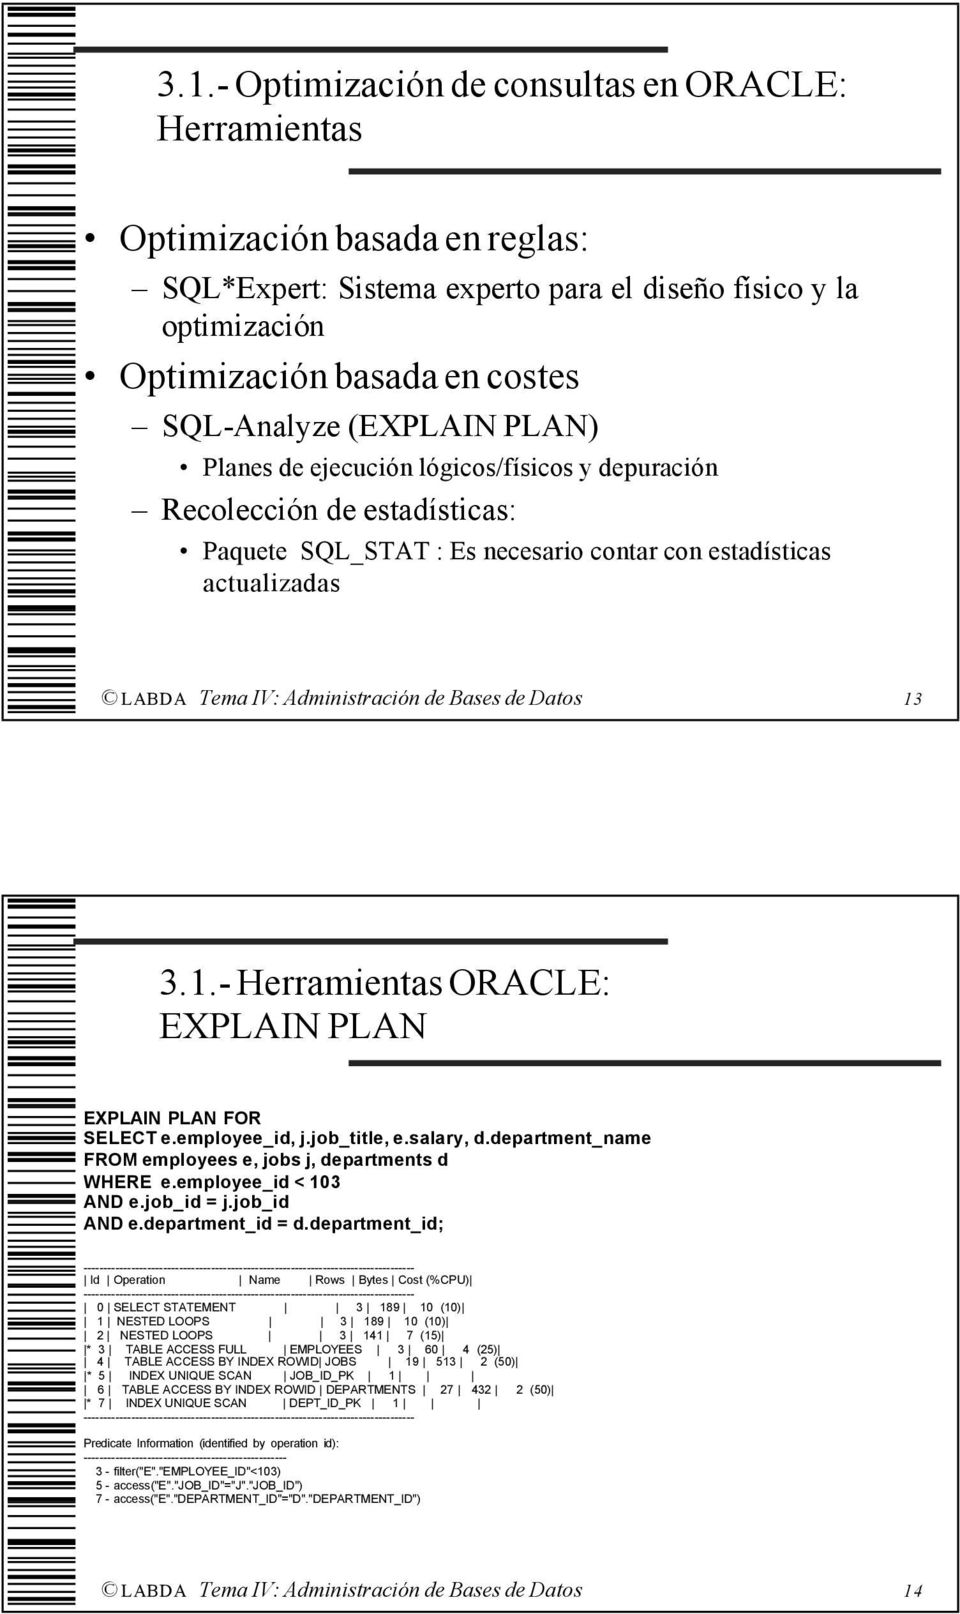 3.1.- Herramientas ORACLE: EXPLAIN PLAN EXPLAIN PLAN FOR SELECT e.employee_id, j.job_title, e.salary, d.department_name FROM employees e, jobs j, departments d WHERE e.employee_id < 103 AND e.